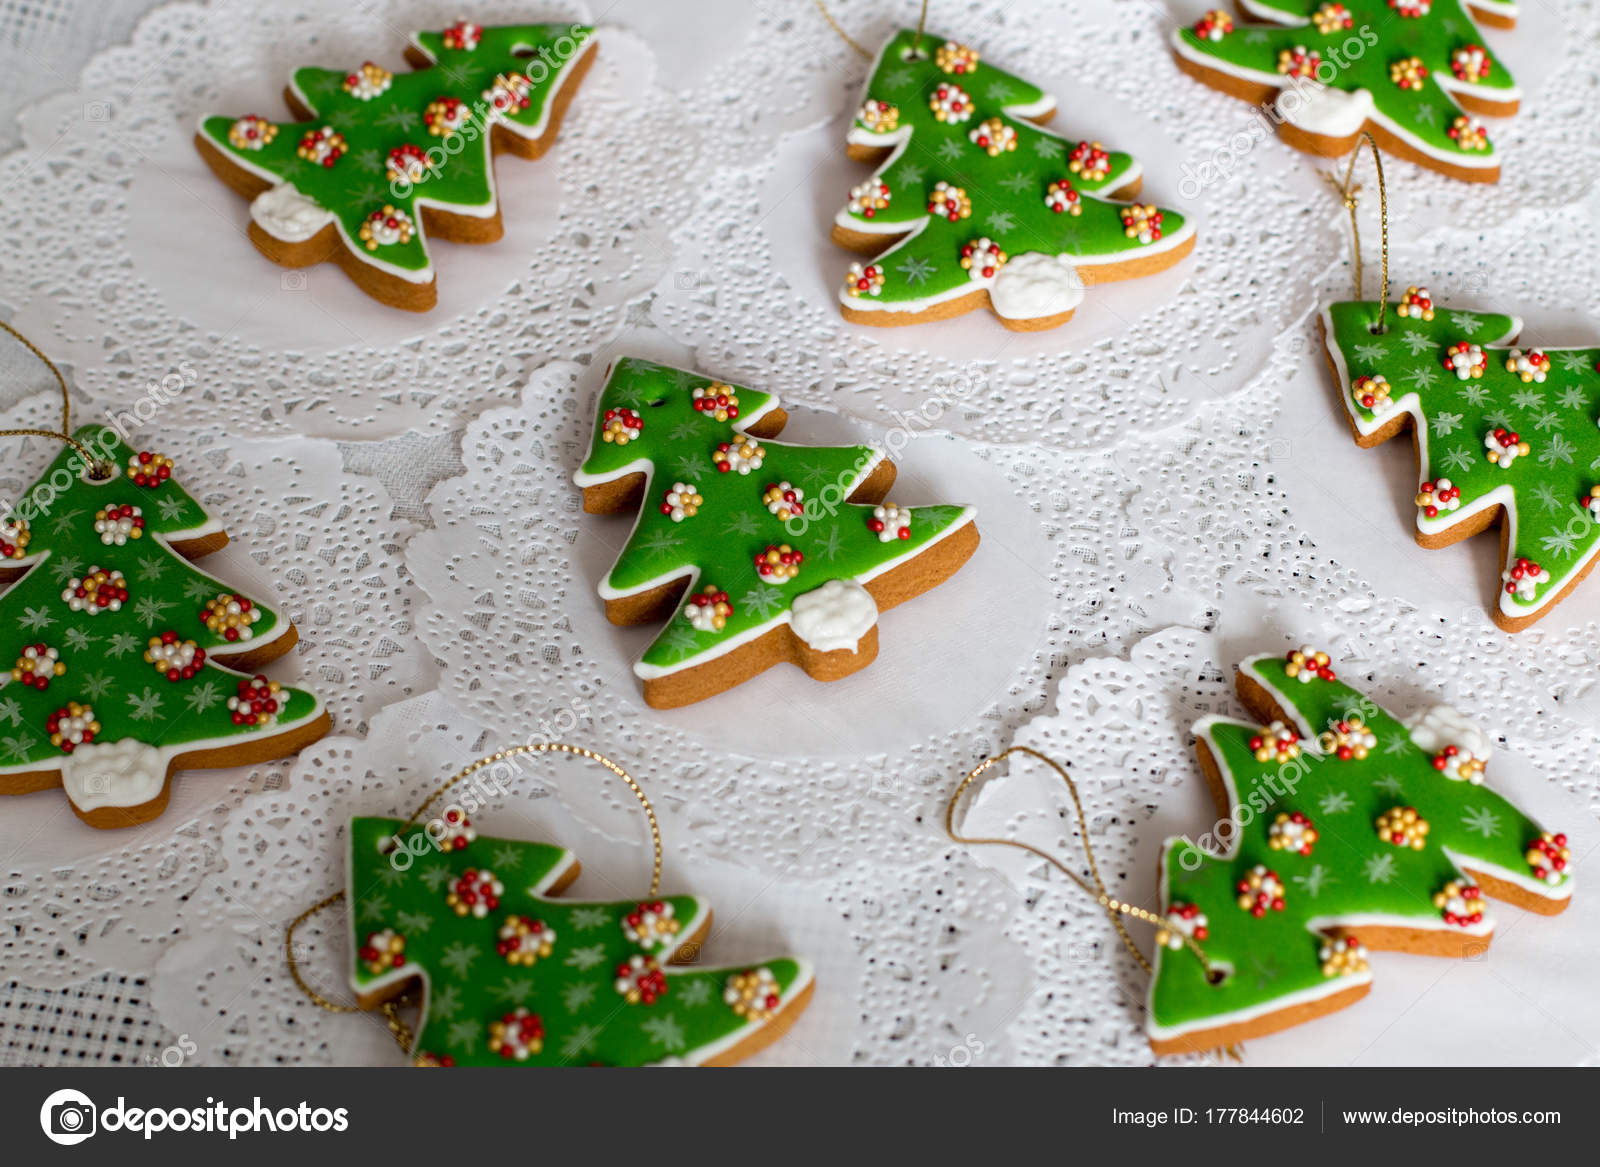 Painted Gingerbread In The Shape Of Christmas Tree On A White Napkin